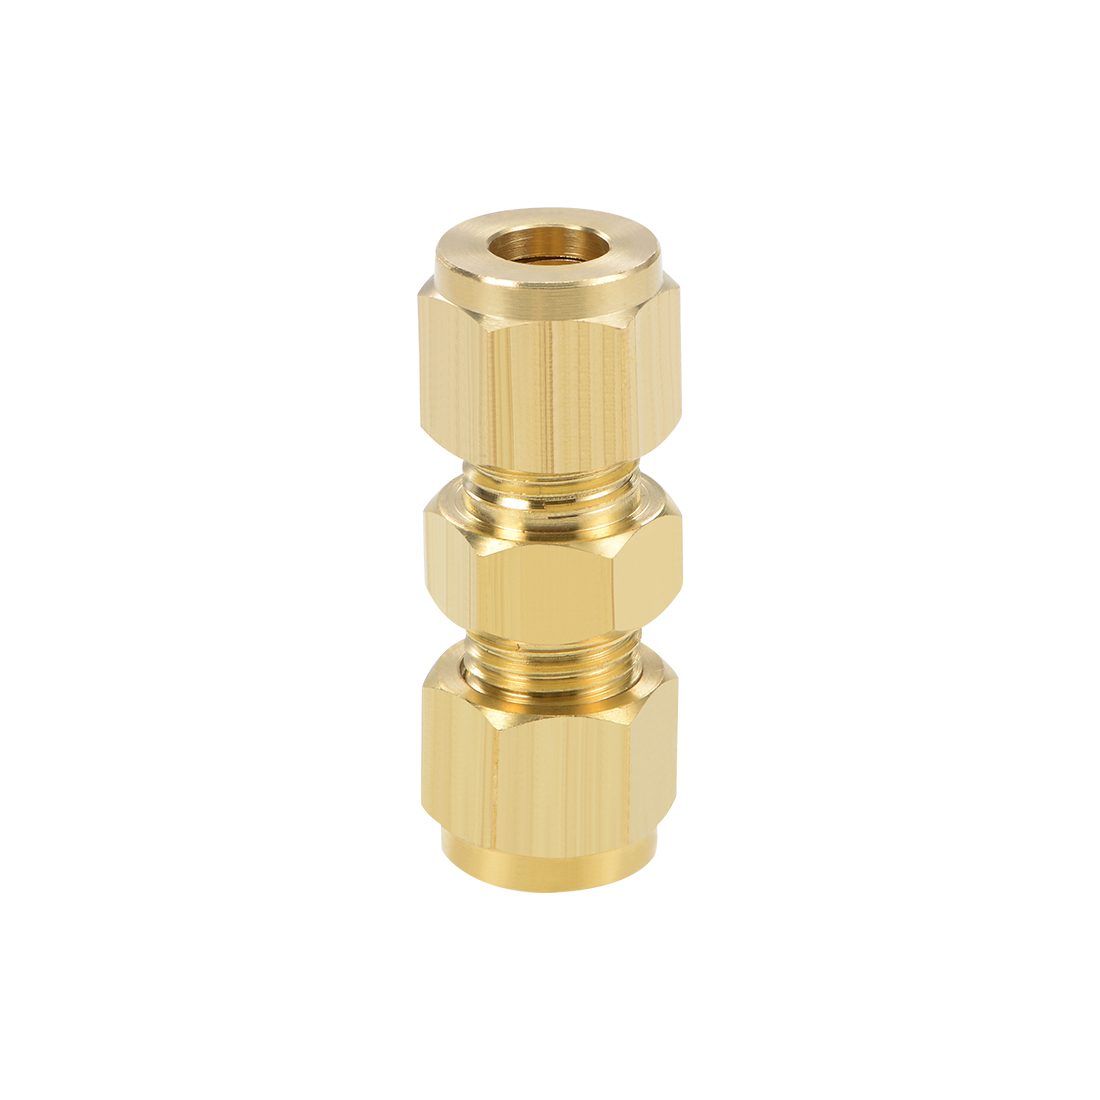 Brass Compression Tube Fitting 8mm OD Straight Pipe Adapter Water Irrigation